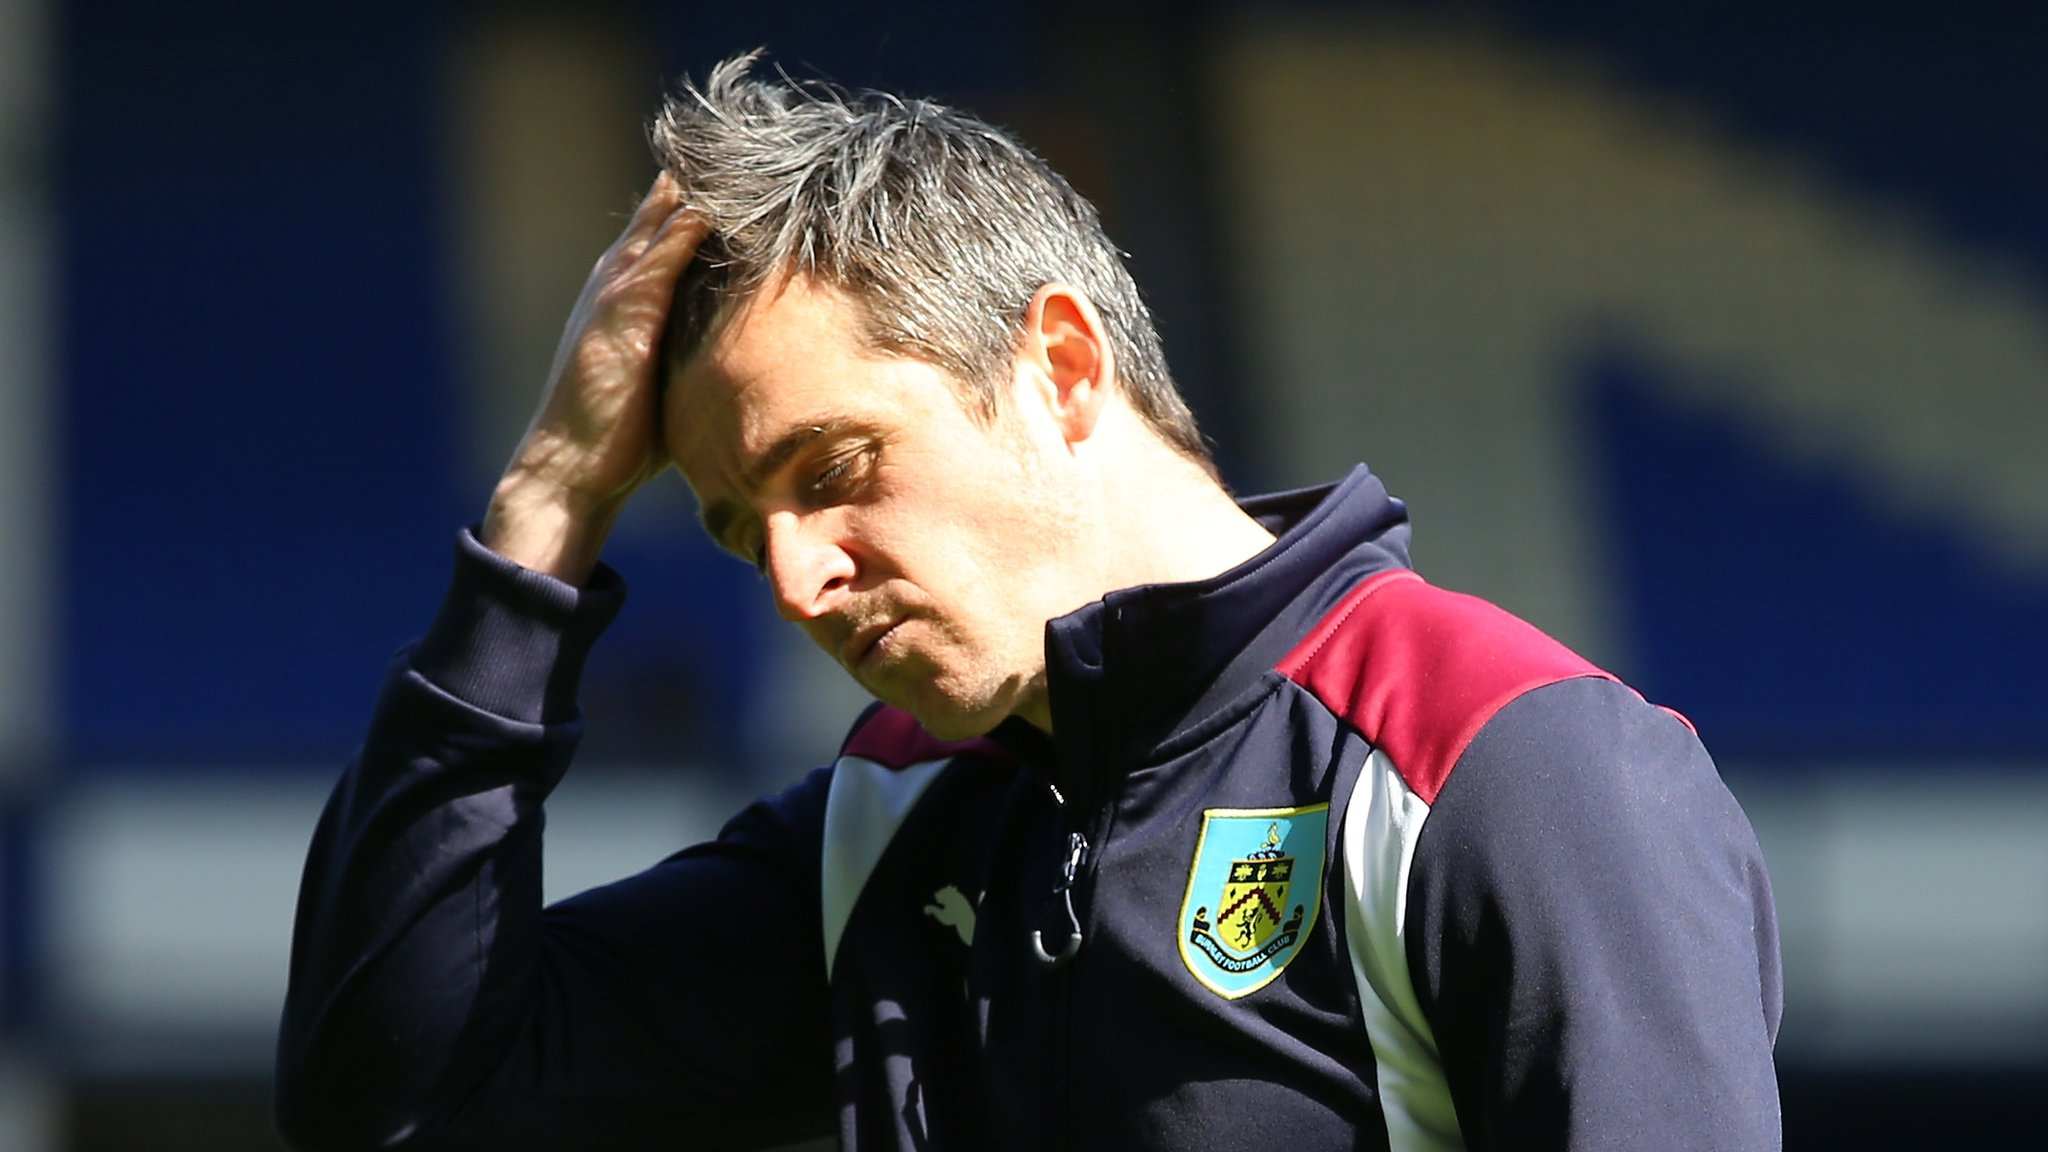 FA gave Barton 'shortest possible ban' for betting